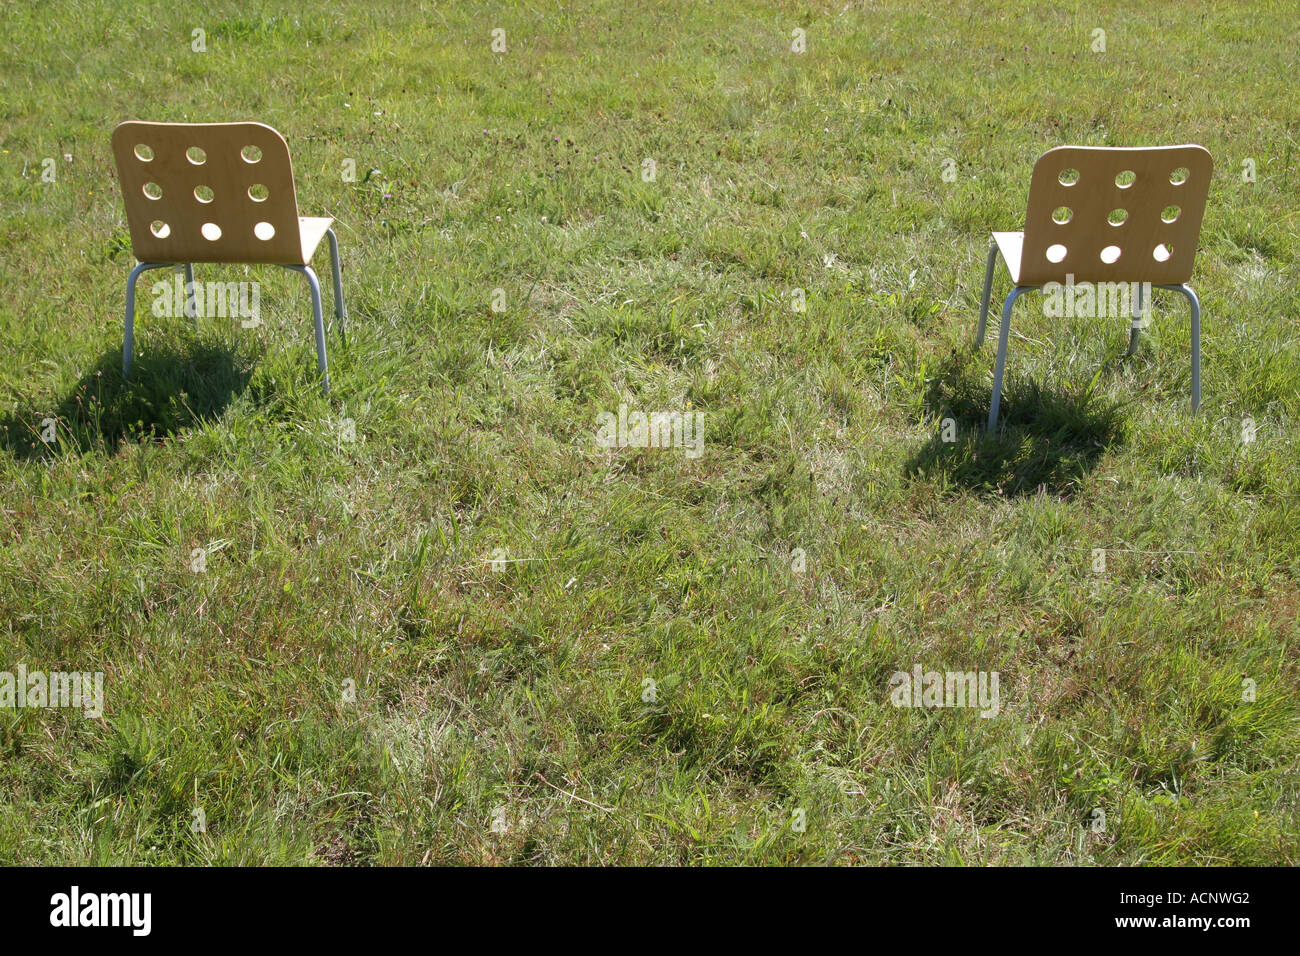 Grüne Küchenstühle Chairs On The Meadow Stühle Im Grünen Stock Photo 7543745 Alamy